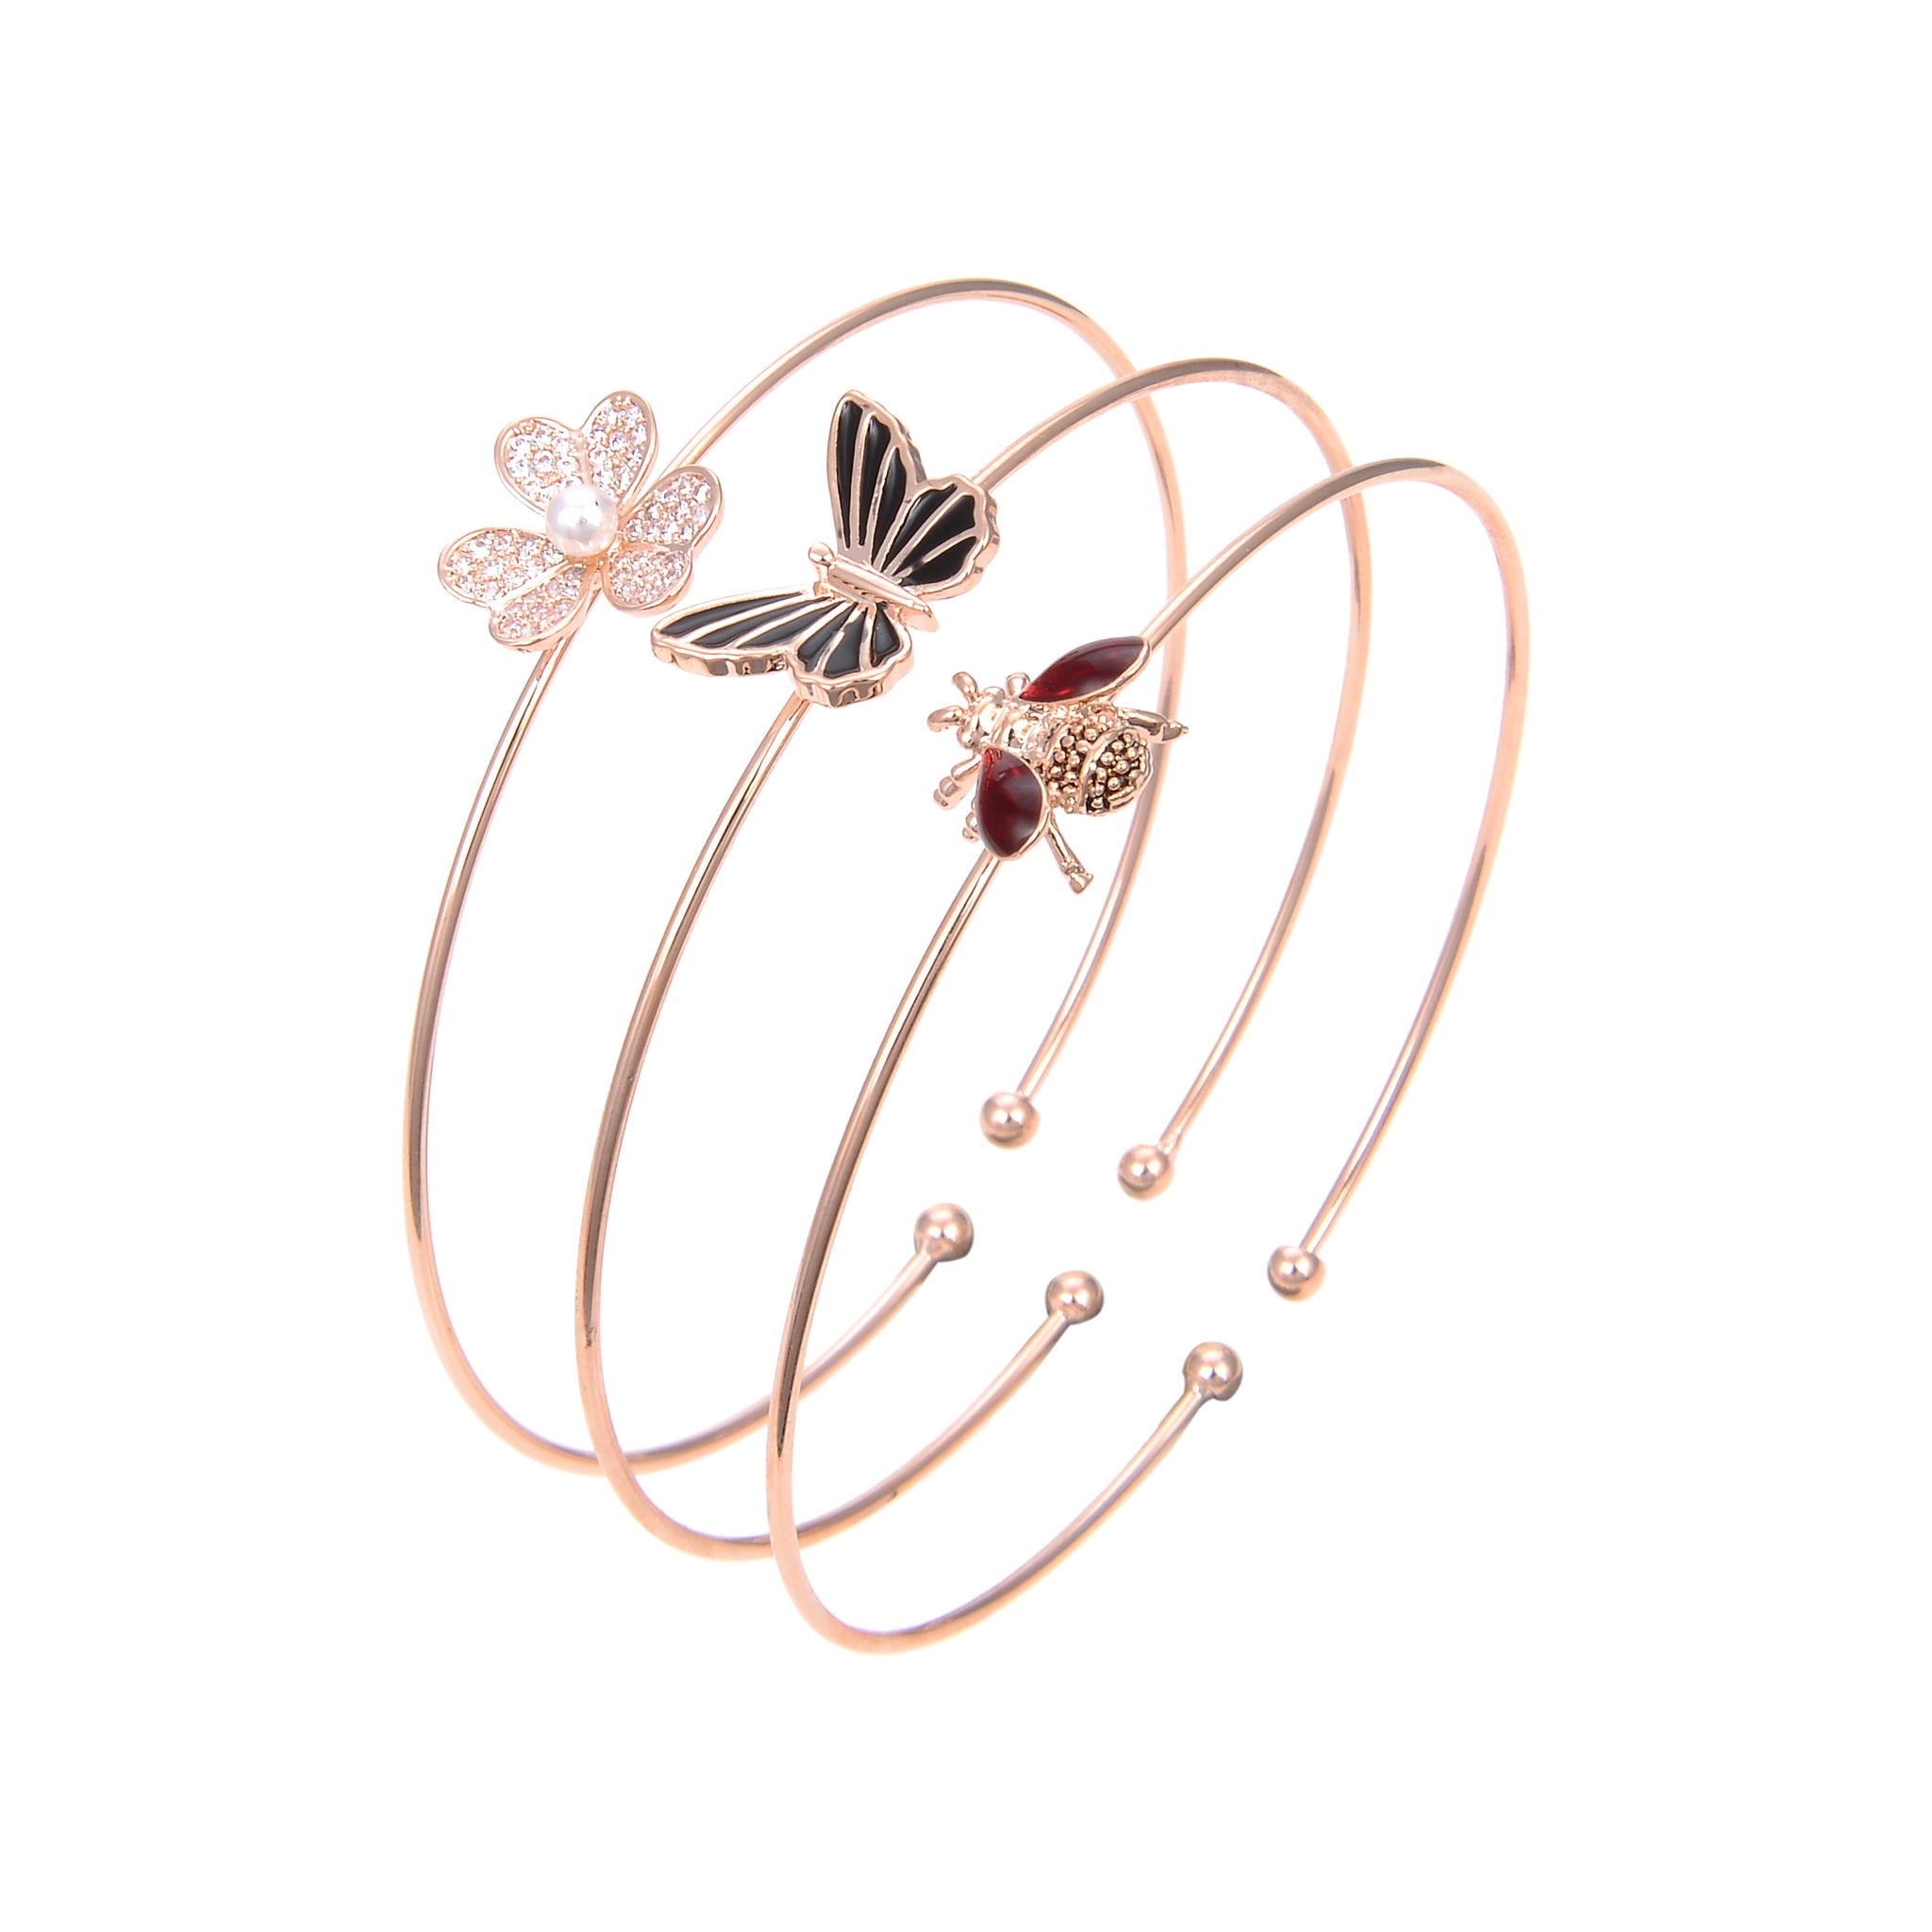 Gold Plated Cubic Zirconia Black Onyx Bangle Bracelet, Butterfly Print CZ Bangle Brecelet